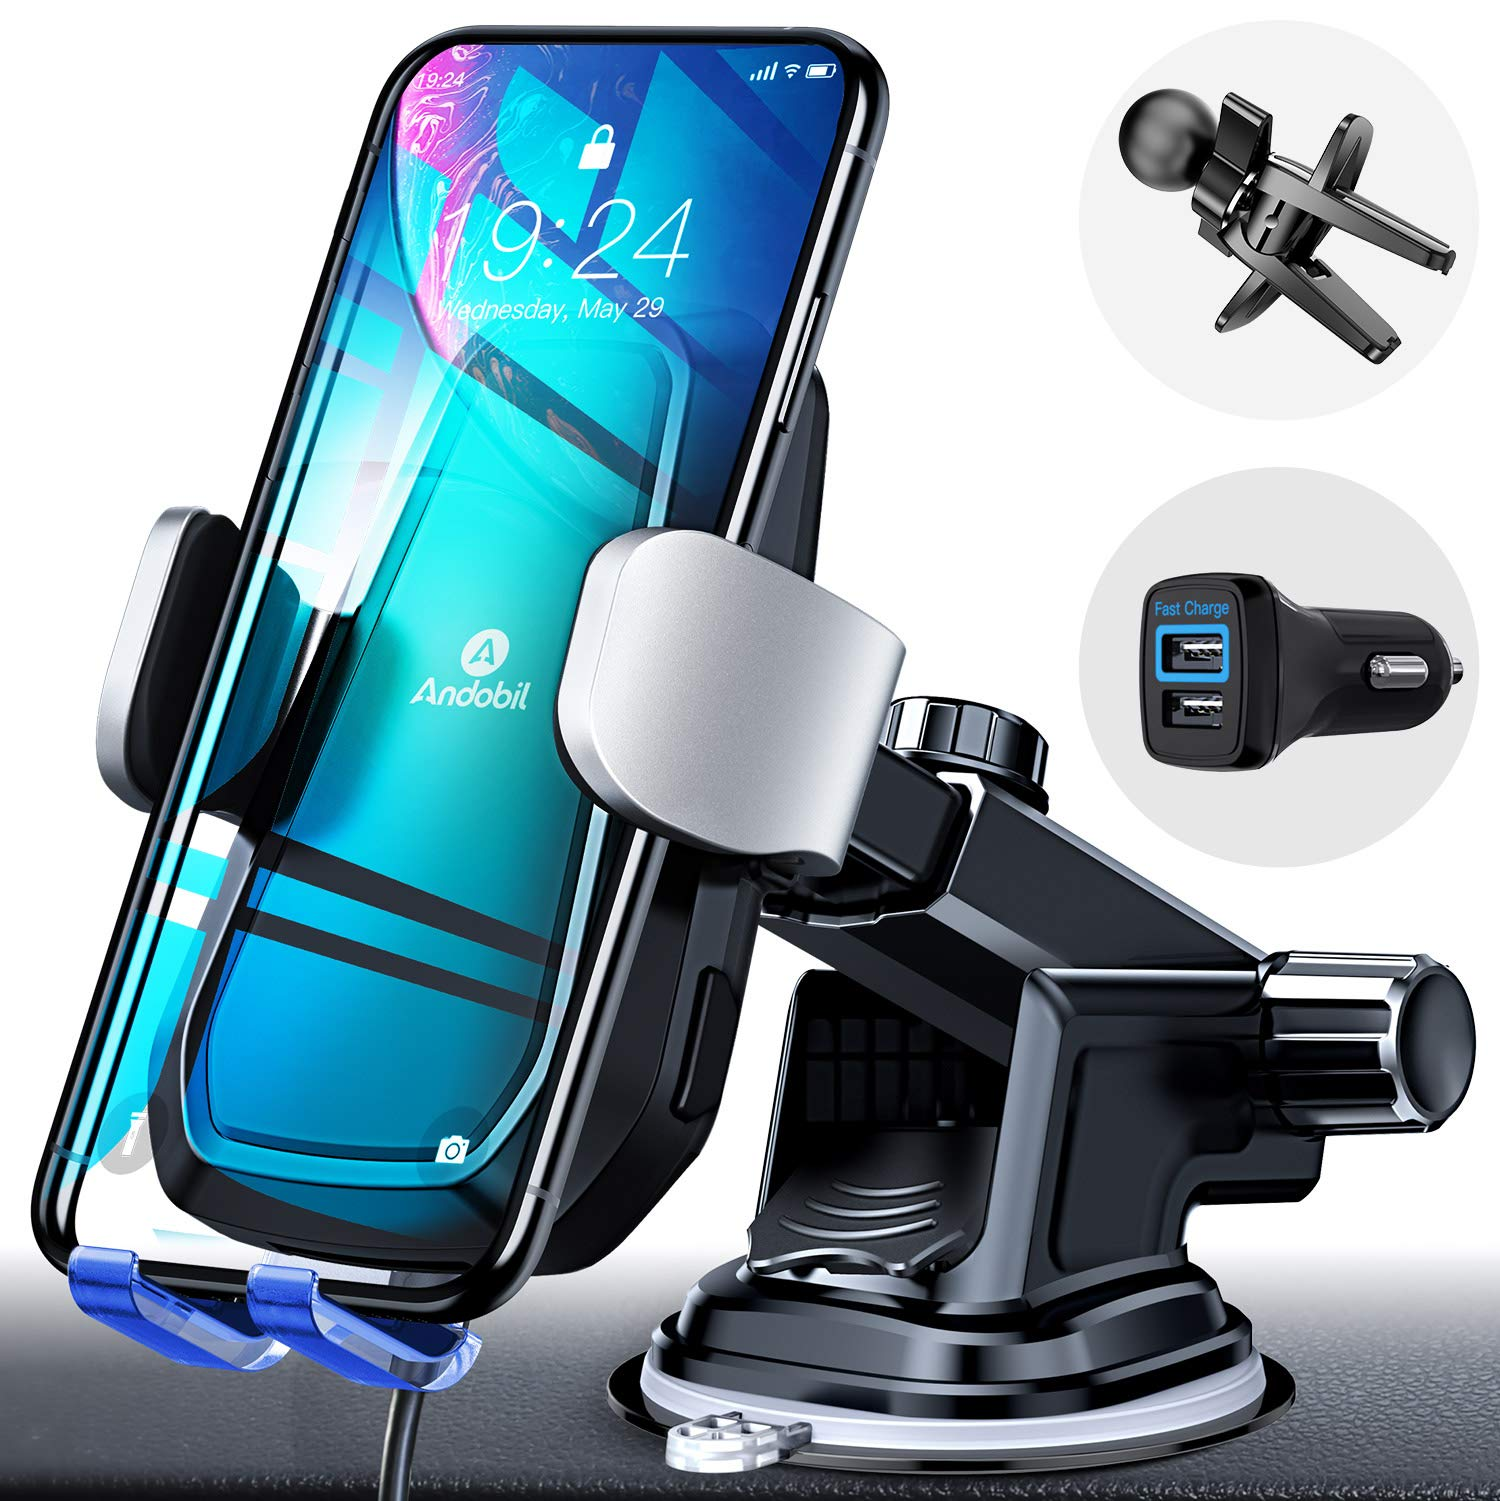 Andobil Automatic Clamping Wireless Car Charger Mount, Qi 10W 7.5W Fast Charging Air Vent Dashboard Phone Holder for iPhone 11 Xs Max XR 8 Plus, Samsung Galaxy S10 S9 S8 Note 10/9 (with QC3.0 Adapter) by andobil